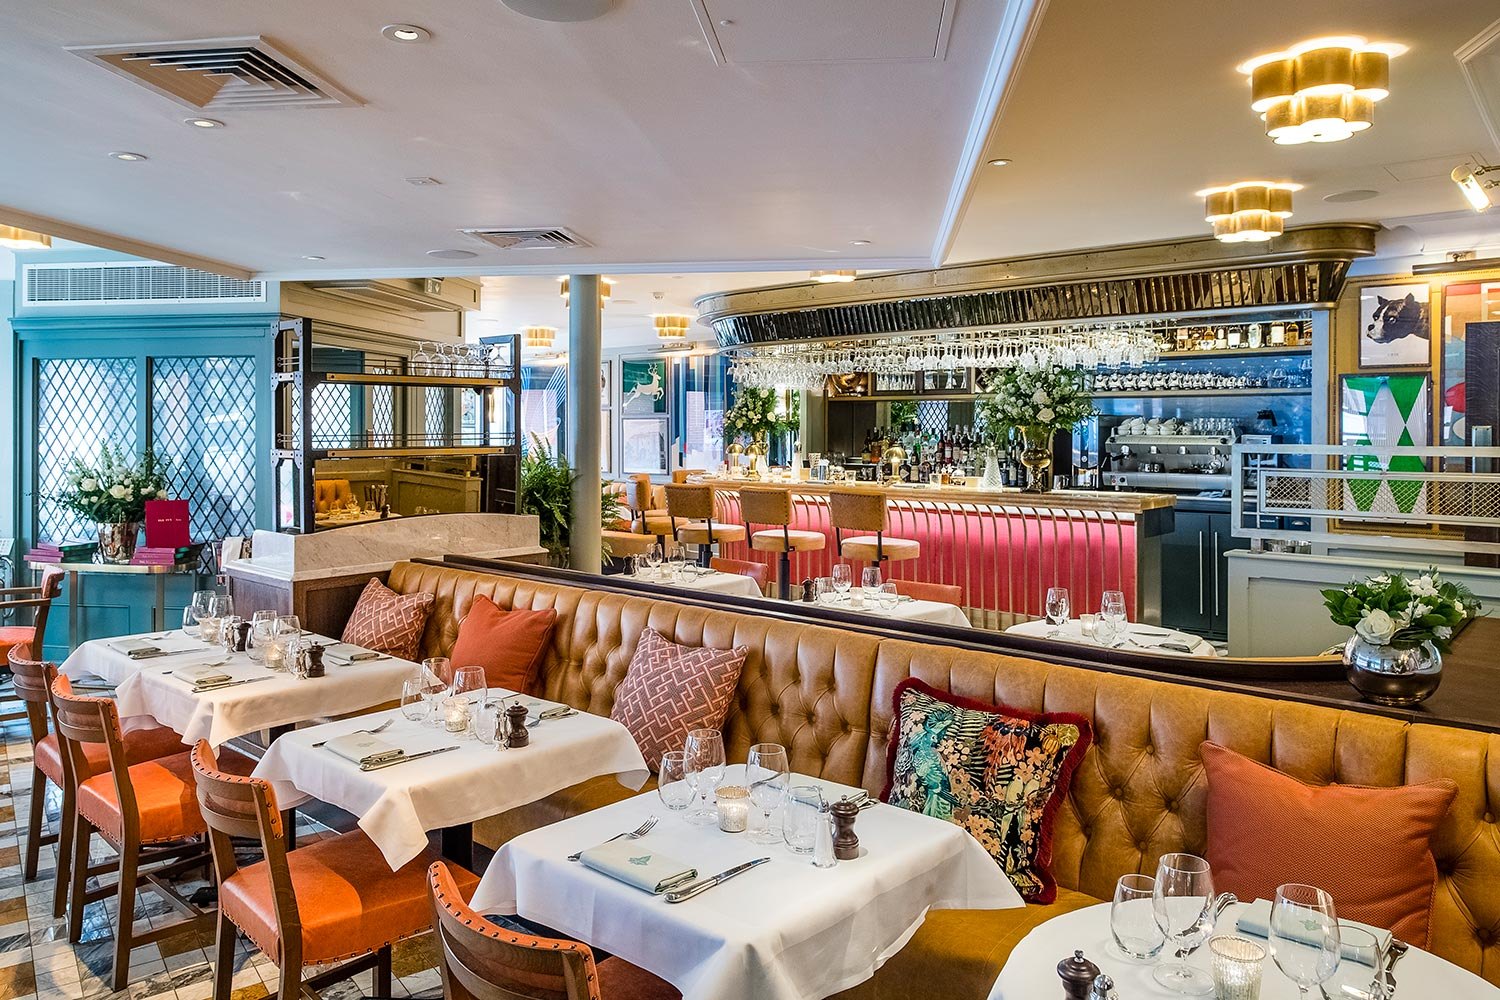 Eating out in St Albans, The Ivy St Albans Brasserie - The Ivy St Albans Brasserie